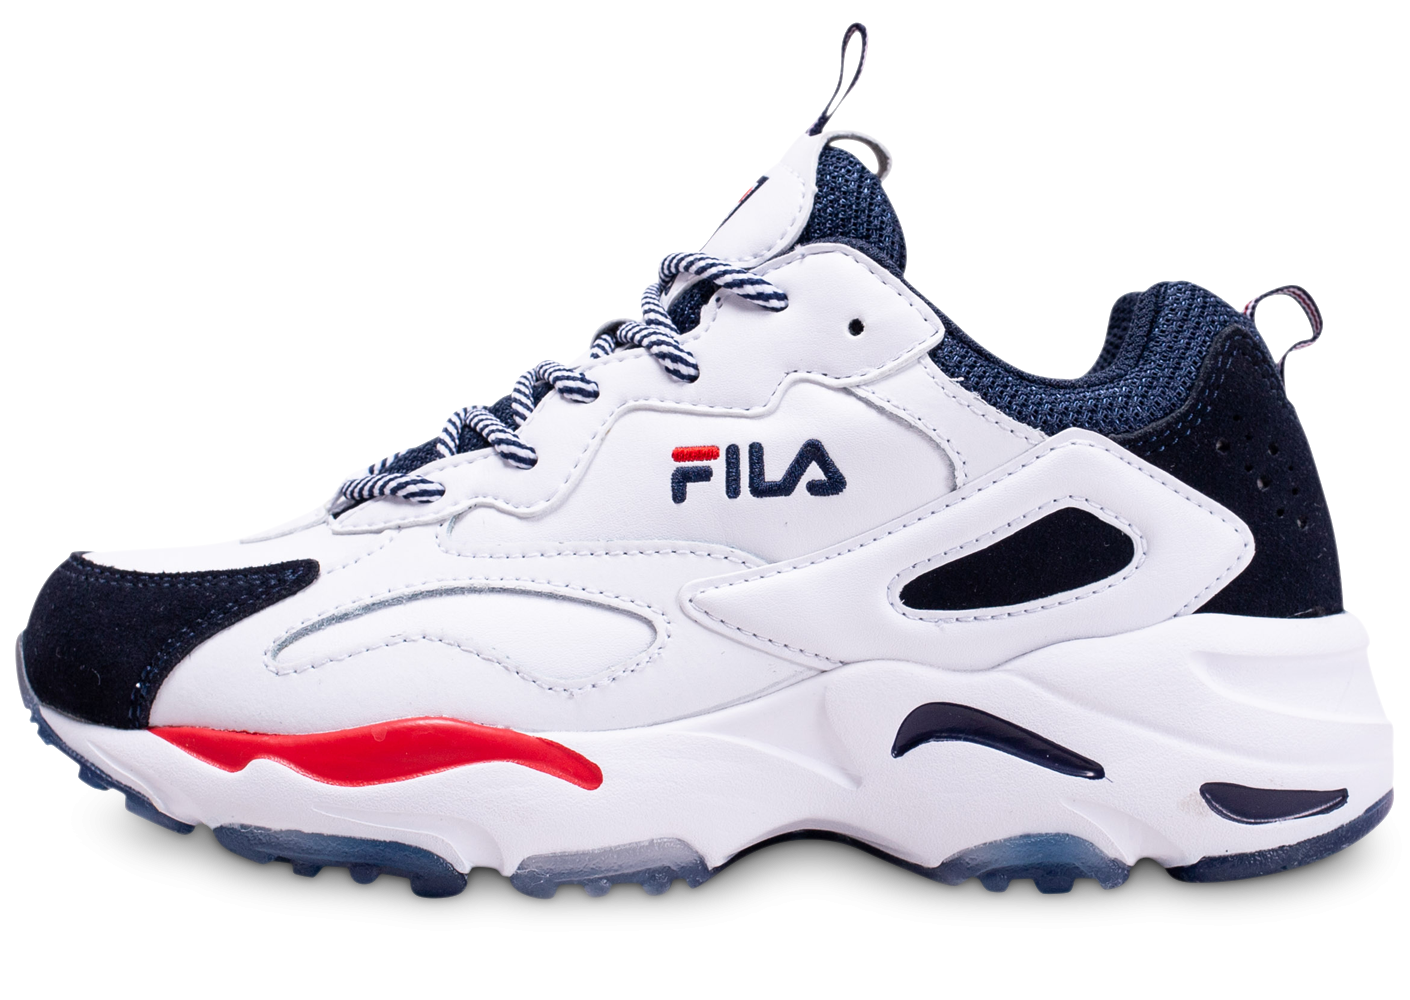 Fila Ray Tracer blanche junior - Chaussures Prix stylés - Chausport